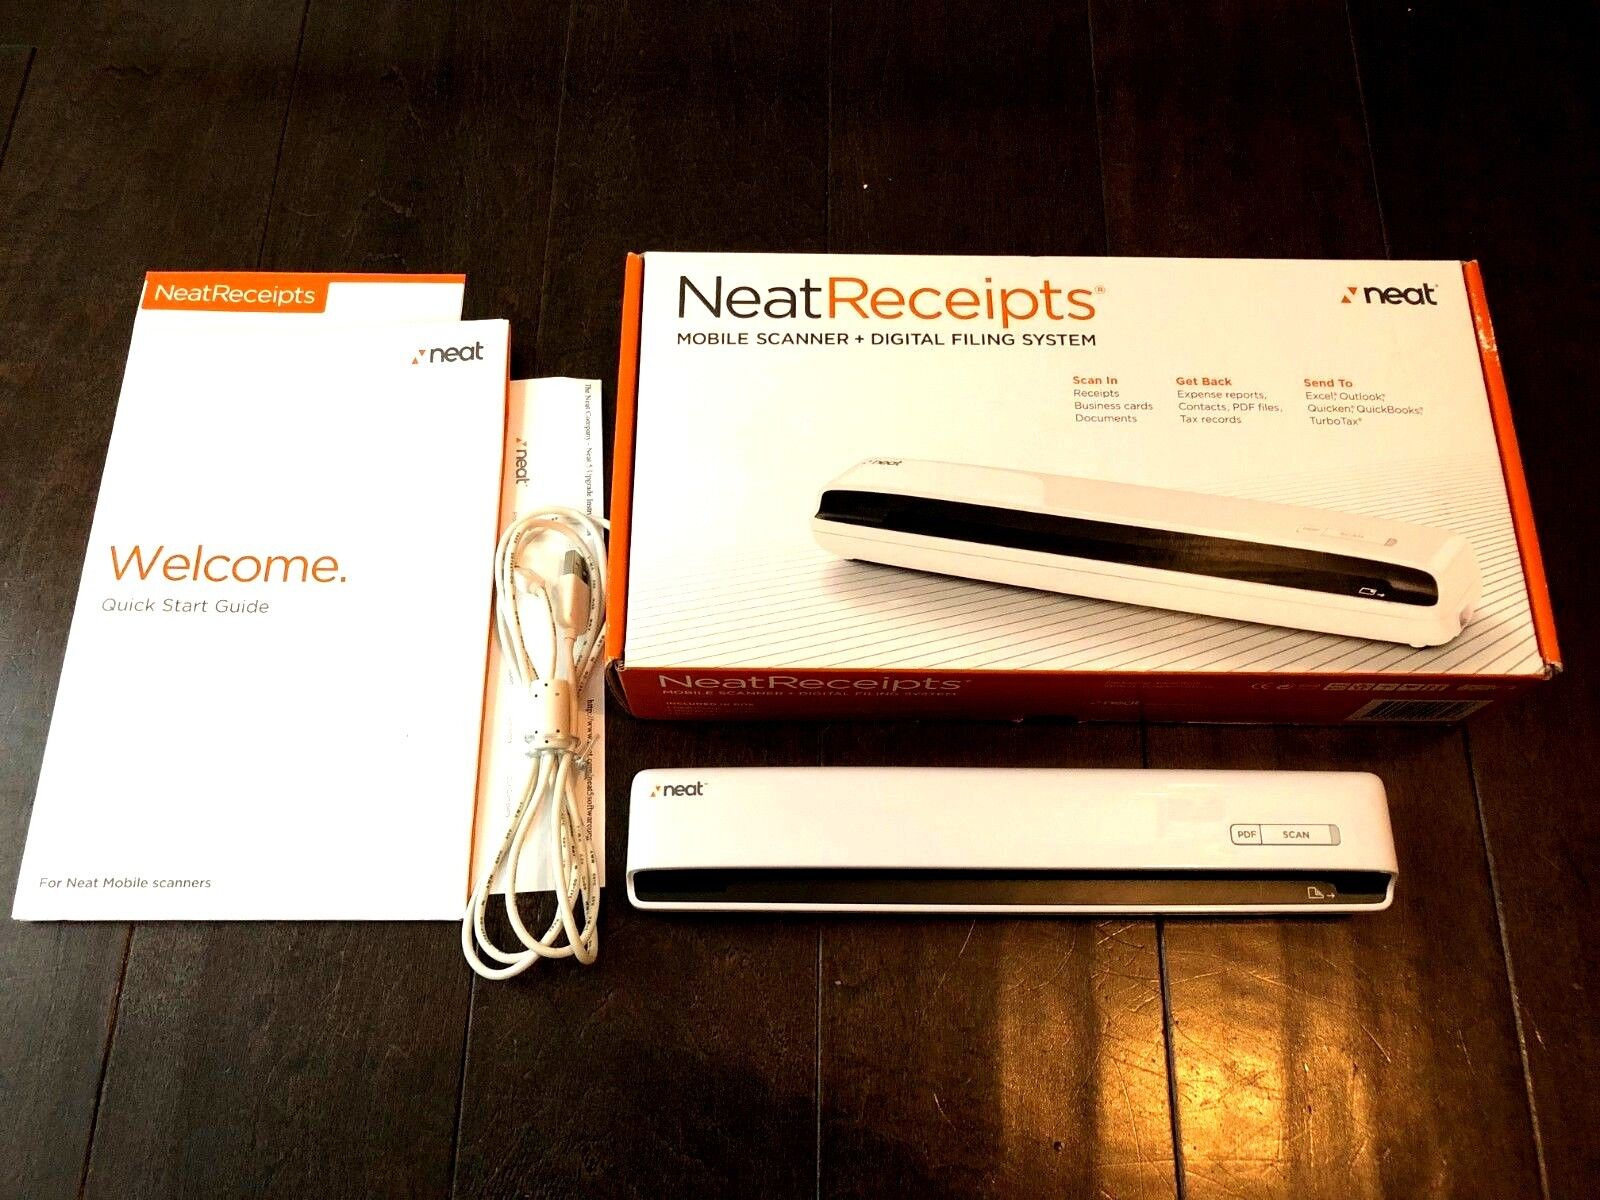 NeatReceipts NM-1000 Mobile Scanner-Digital Filing System Complete & Oh So Neat!